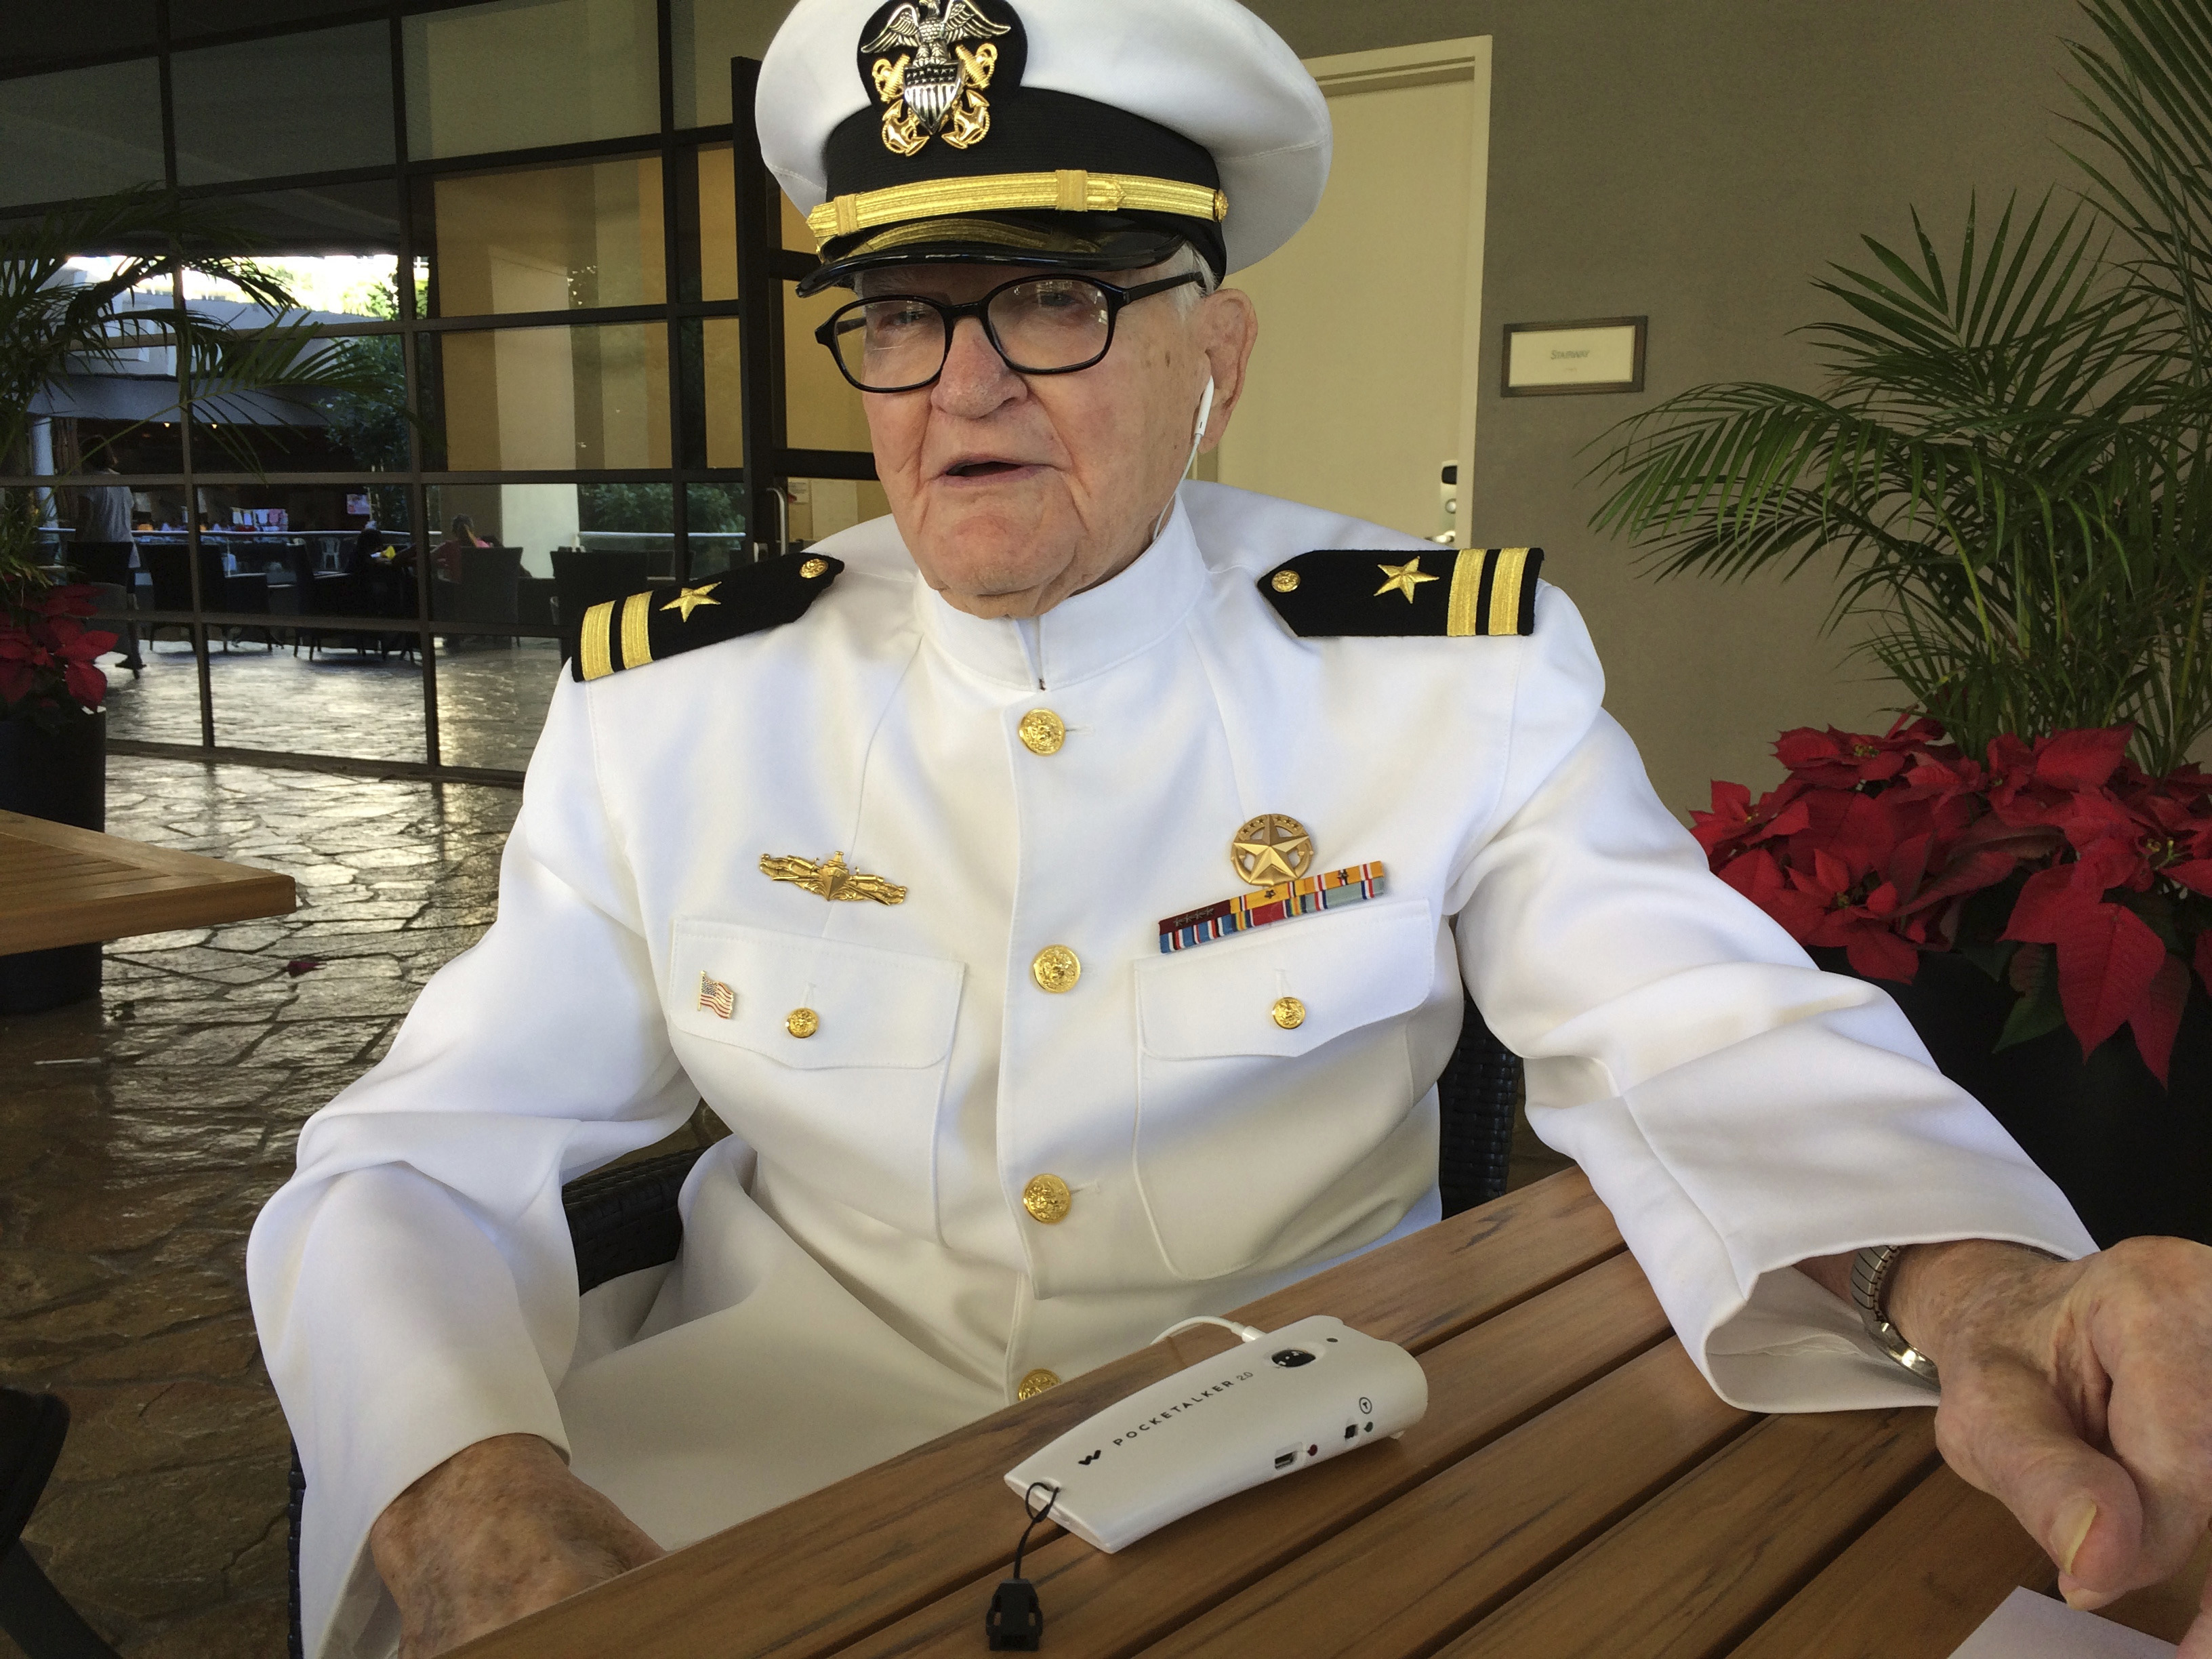 Jim Downing, 103, poses in a Navy uniform in Honolulu, on Dec. 5, 2016.(AP Photo/Audrey McAvoy)